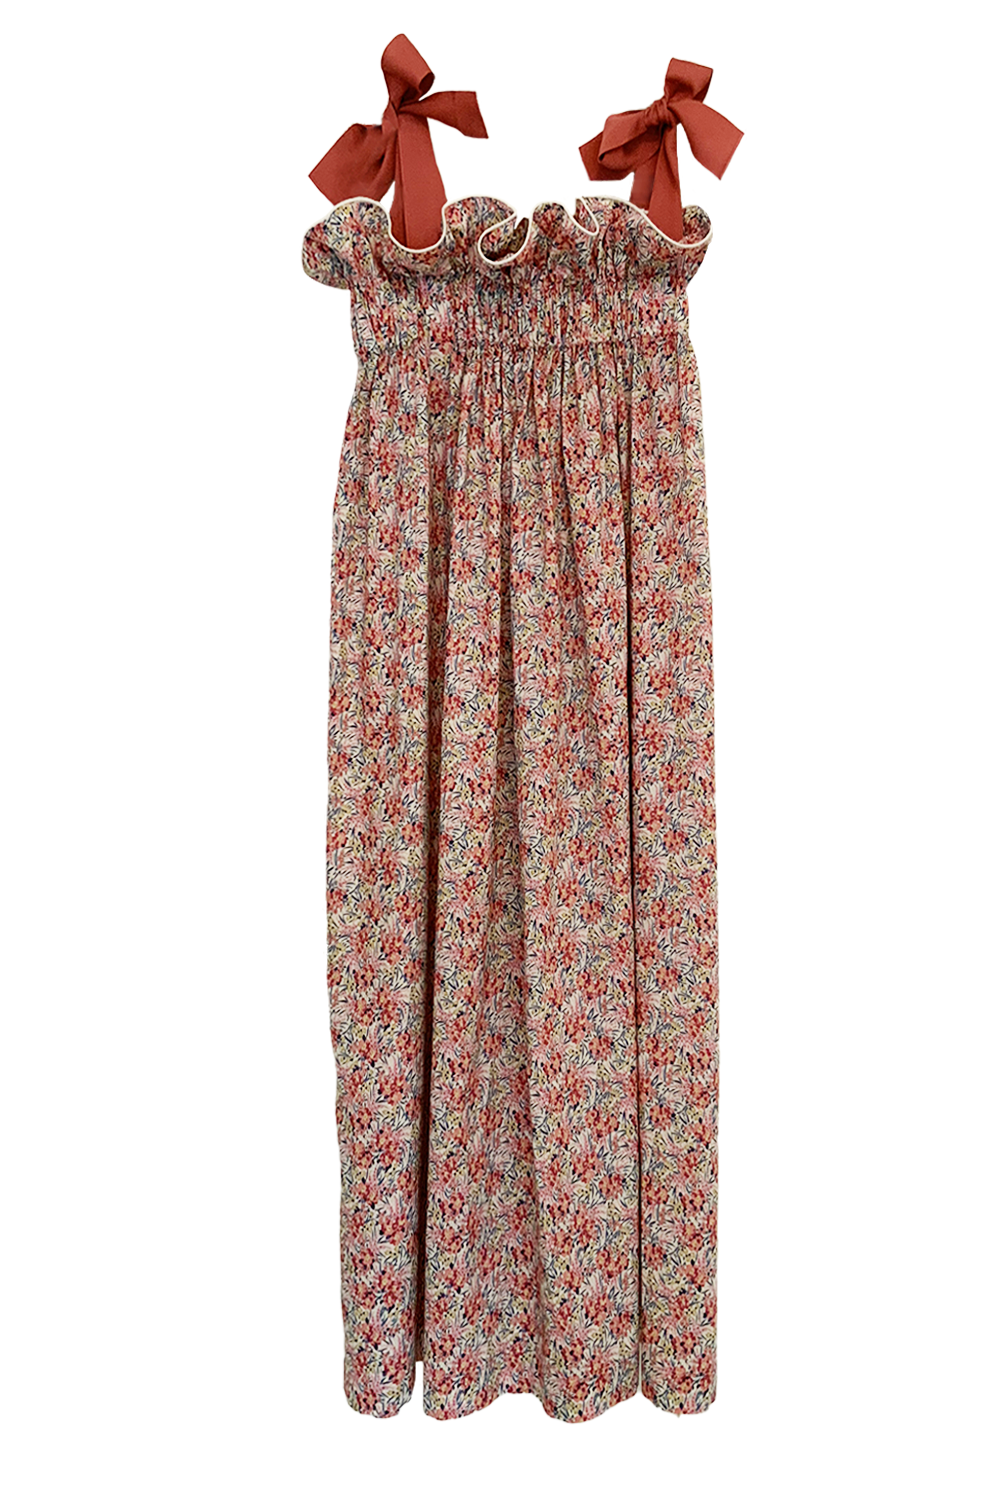 Jaime Dress, Liberty Swirling Floral Cotton Lawn